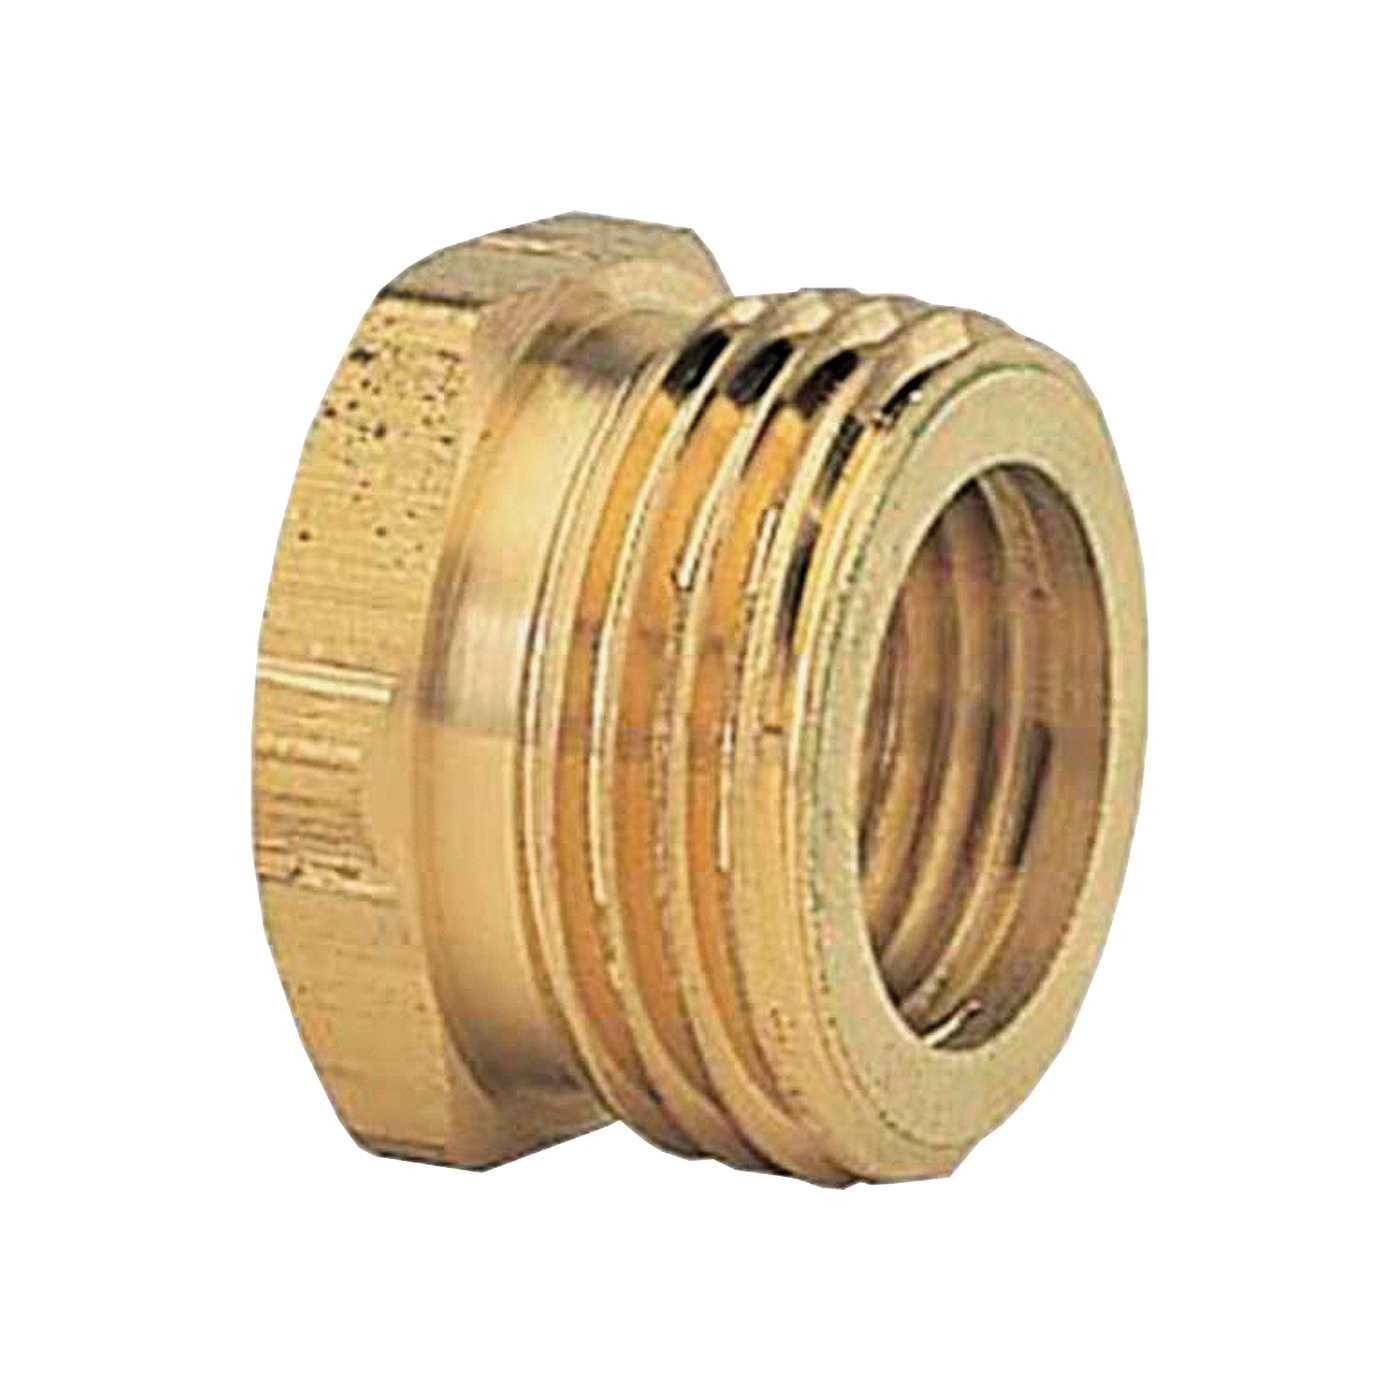 Picture of Gilmour 800774-1001 Hose Adapter, 3/4 x 3/4 in, MNPT x FNH, Brass, For: Garden Hose